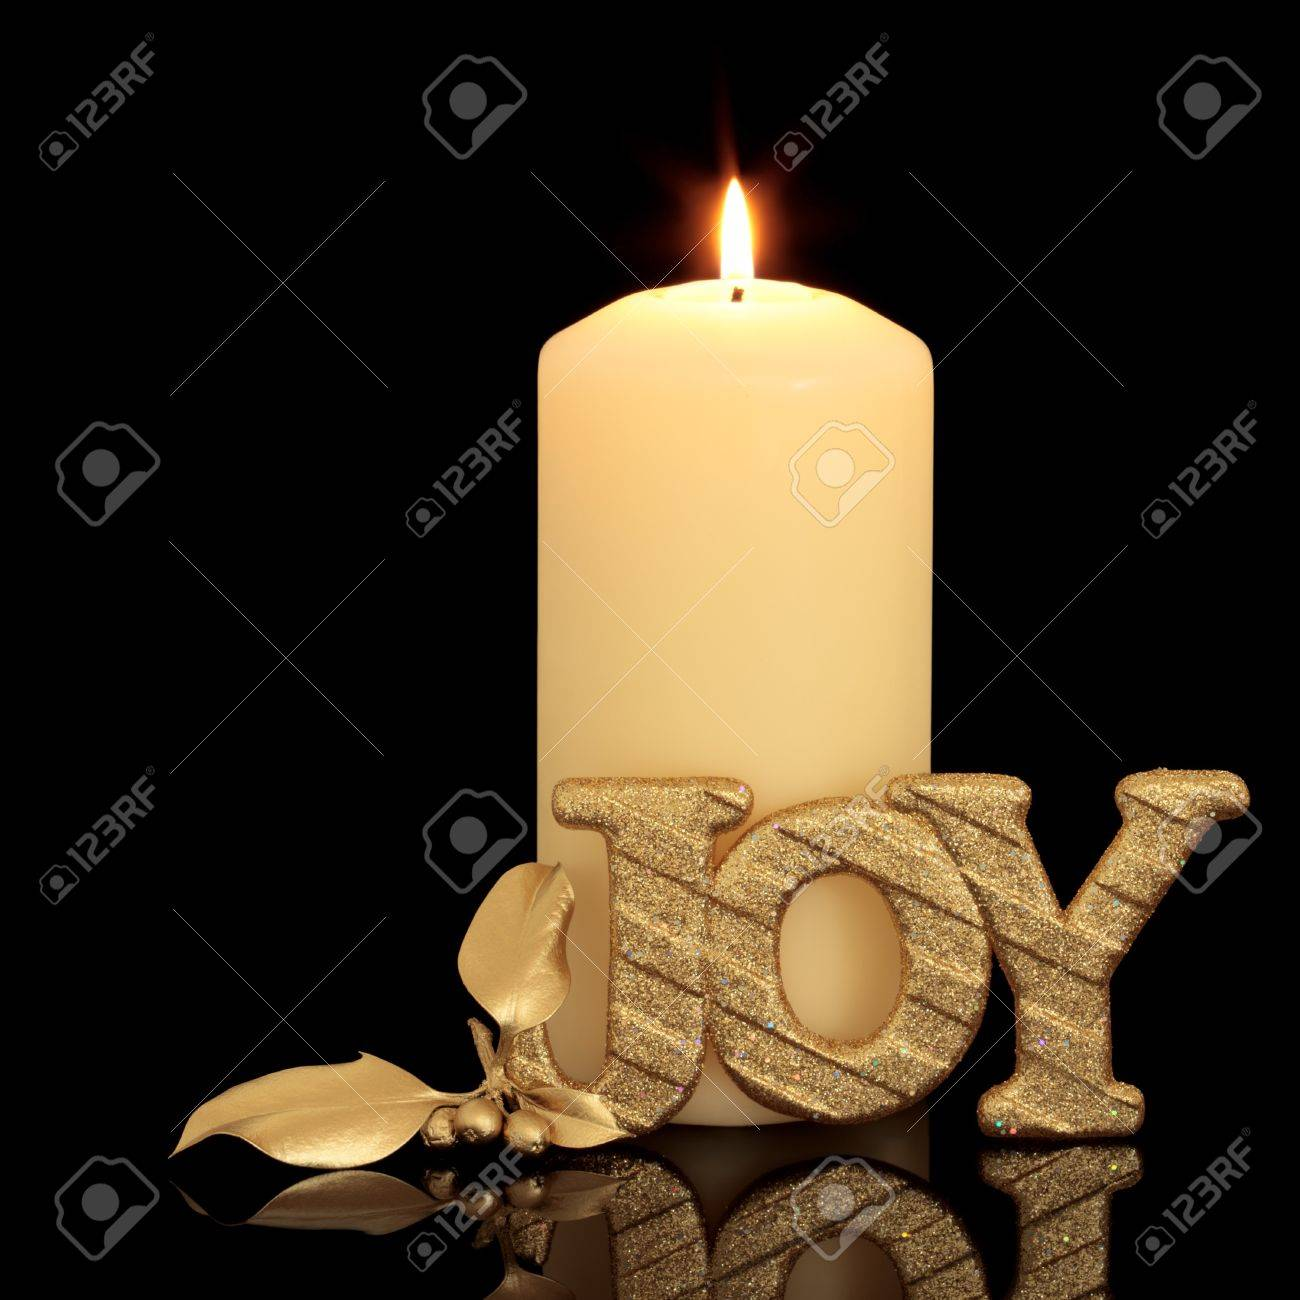 Christmas candle table setting with golden glitter joy sign and holly berry leaf sprig over black background with reflection. Stock Photo - 7903202